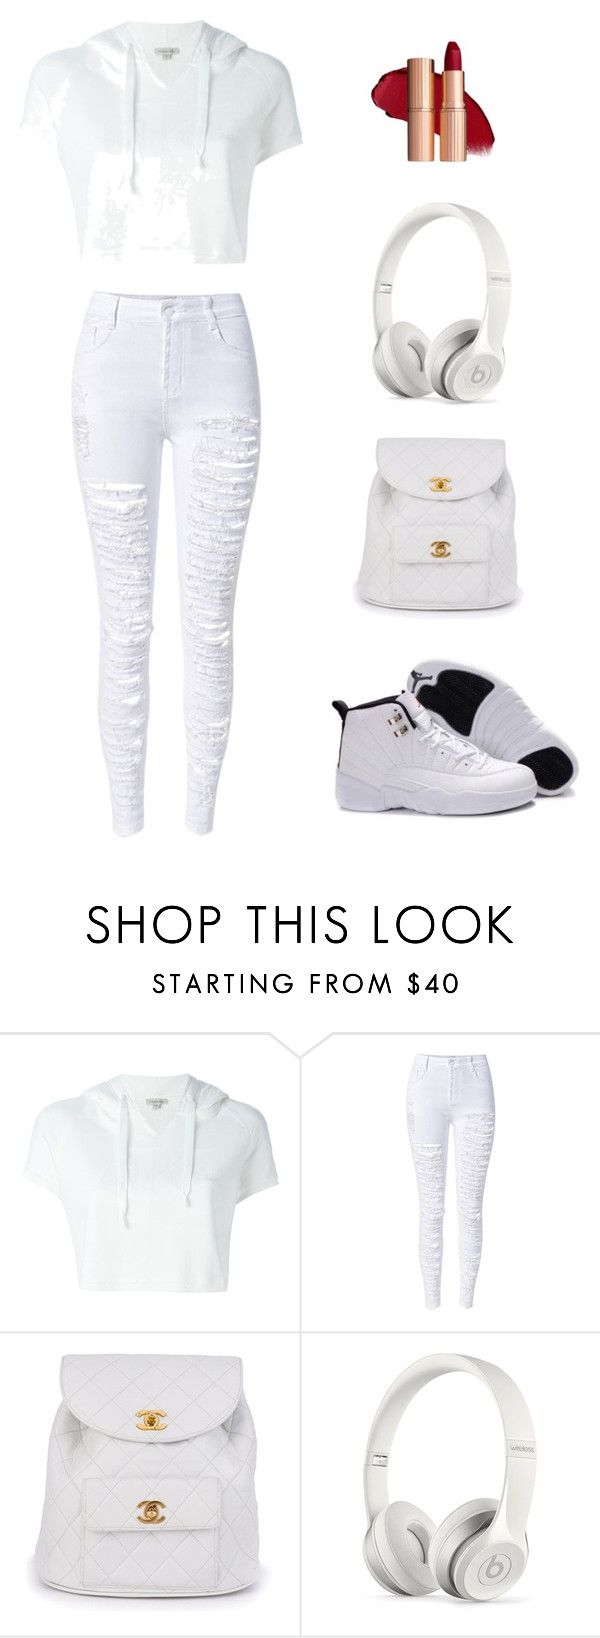 """Untitled #20"" by patshawnj on Polyvore featuring Calvin Klein Jeans, WithChic, Chanel and Beats by Dr. Dre"